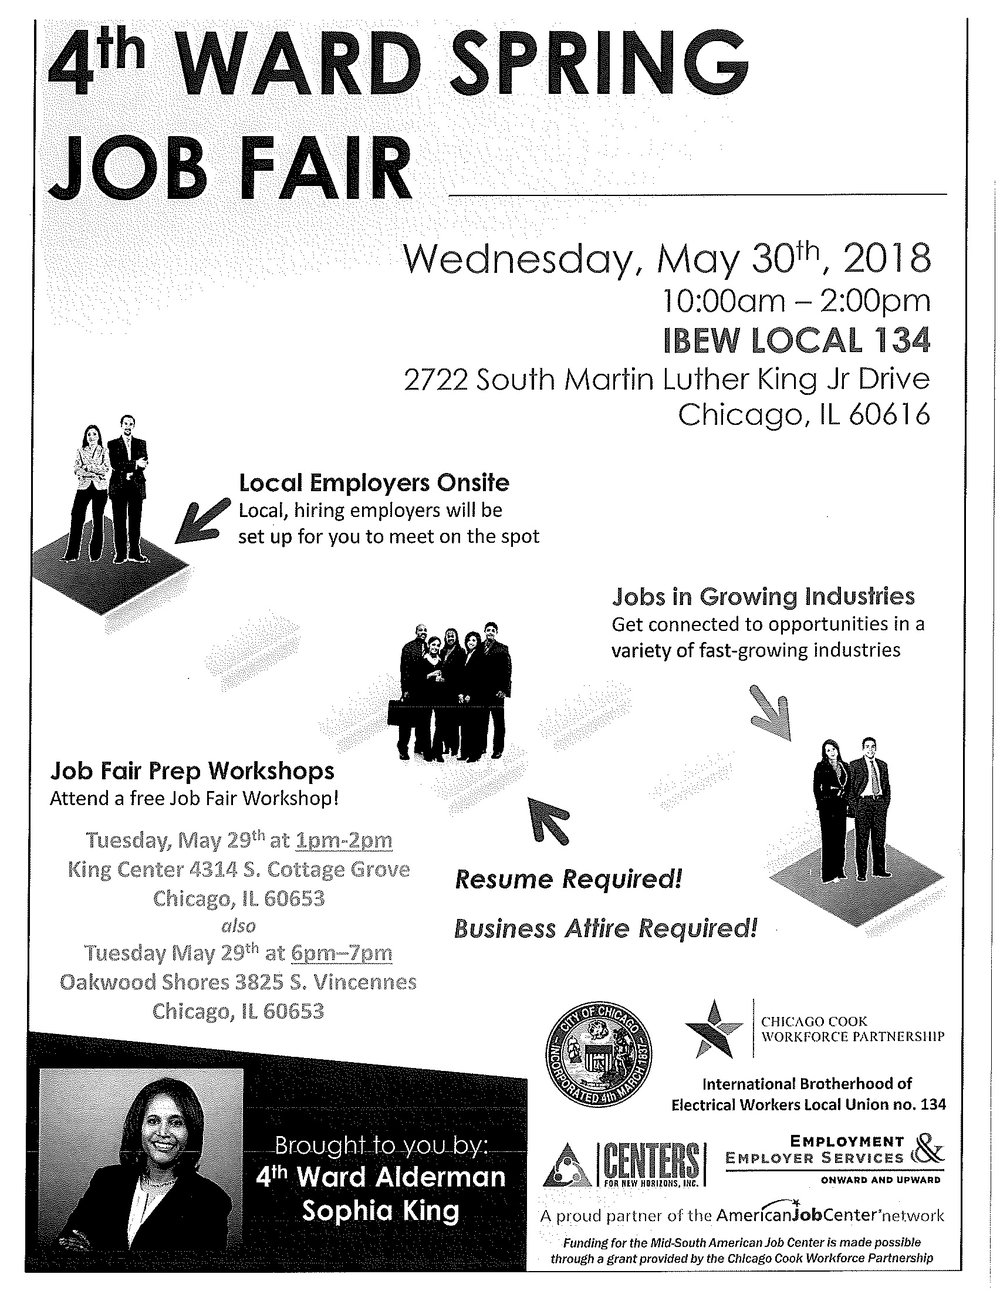 4th ward job fair.jpg